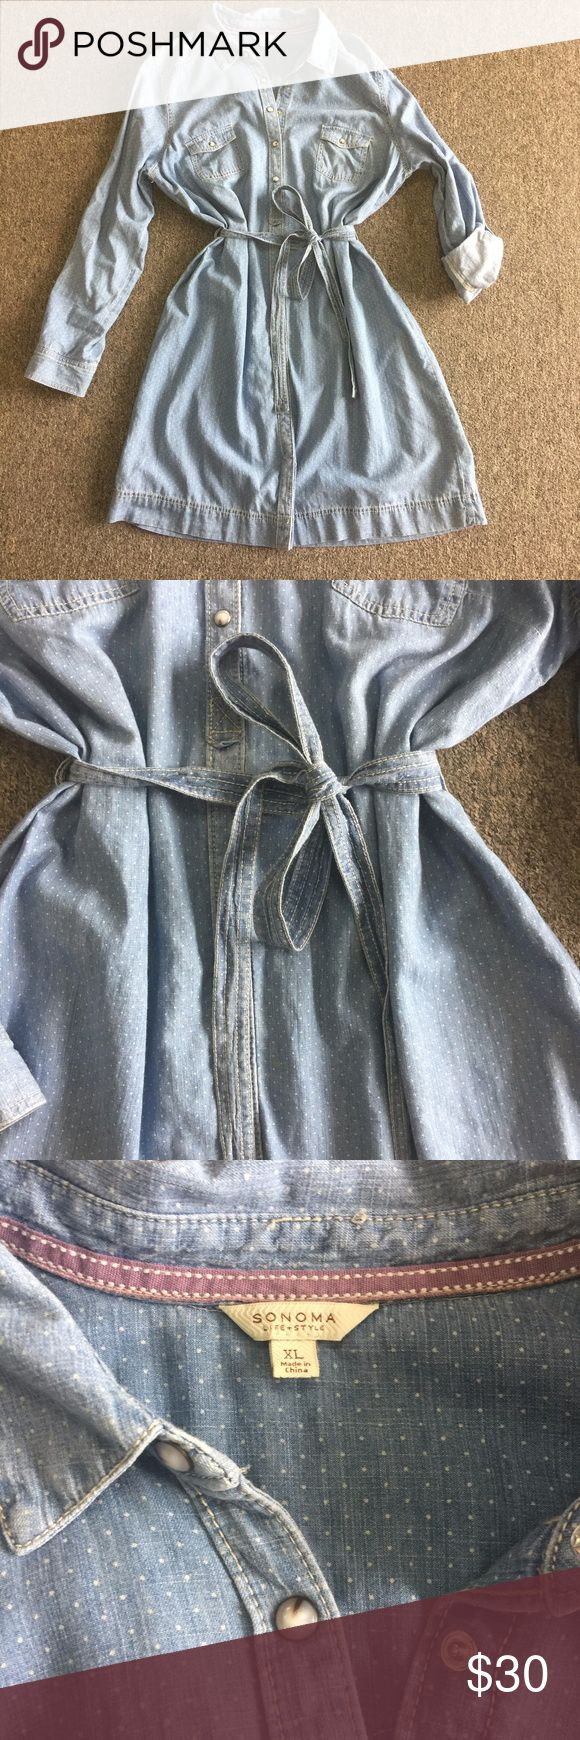 """Sonoma Chambray Dress   Size XL Chambray shirtdress from Sonoma at Kohl's. Denim with small white dots allover. Dress is in excellent condition, with no signs of wear, no holes, stains, or other imperfections. Dress has a collared neck and buttons down the front. Long sleeves with cute little white buttons can be worn down or rolled up. Ties at waist. Size XL measurements laid flat: B: 23"""" W: 23"""" H: 23"""" L: 39"""" from shoulder seam to bottom hem. Sonoma Dresses"""